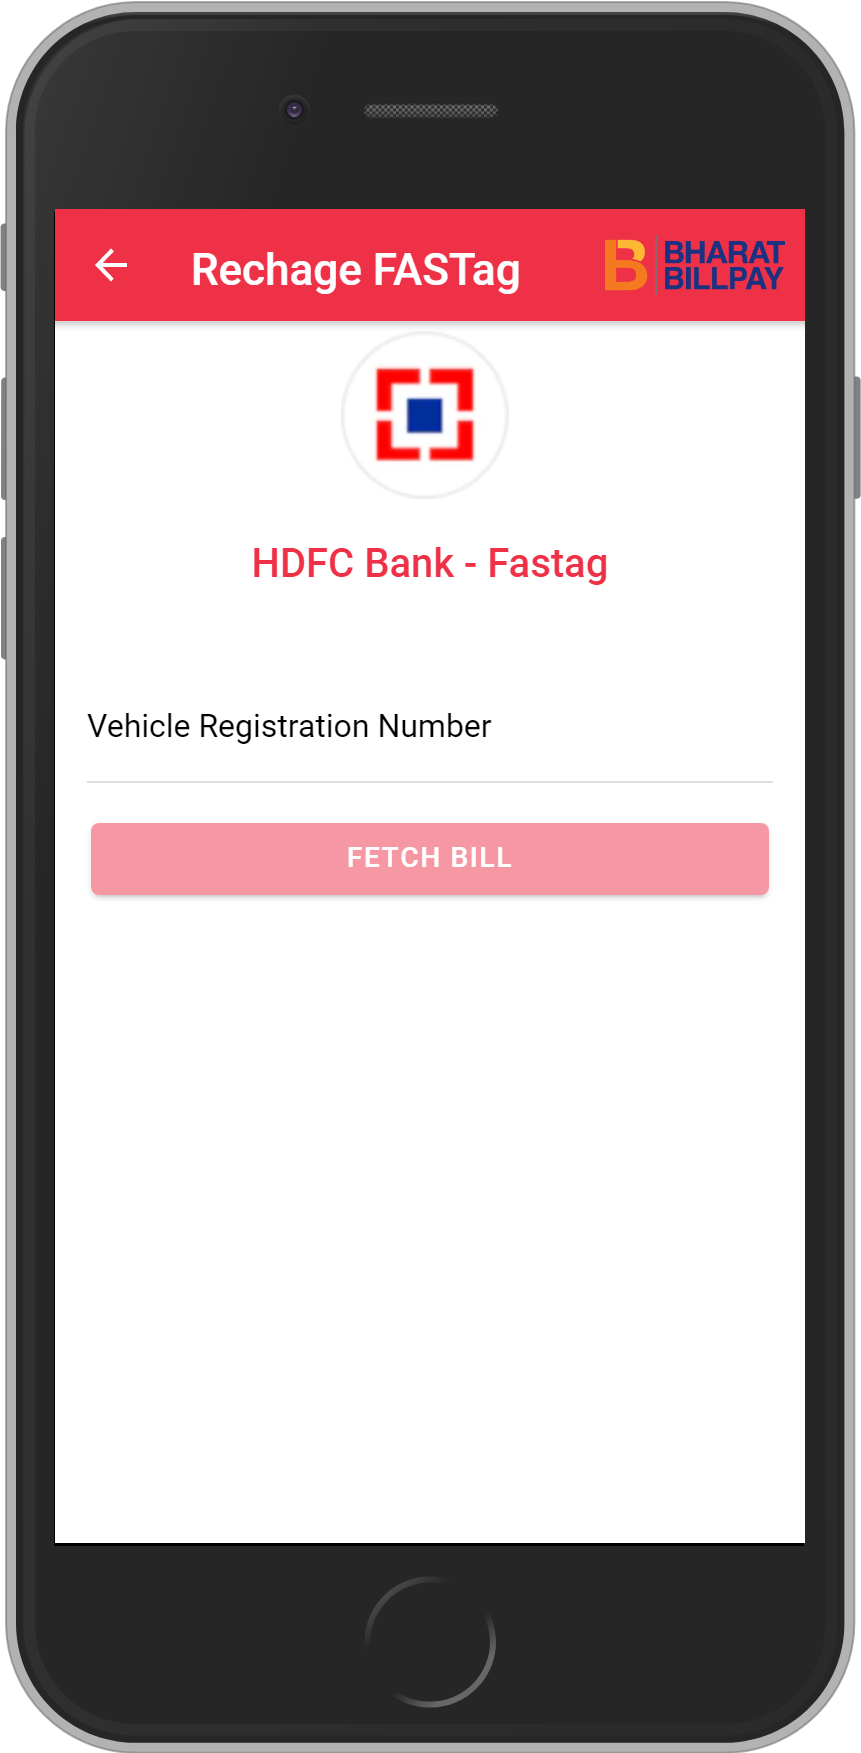 Get UNLIMITED <b>0.1%</b> CASHBACK on HDFC Bank – Fastag Recharge.